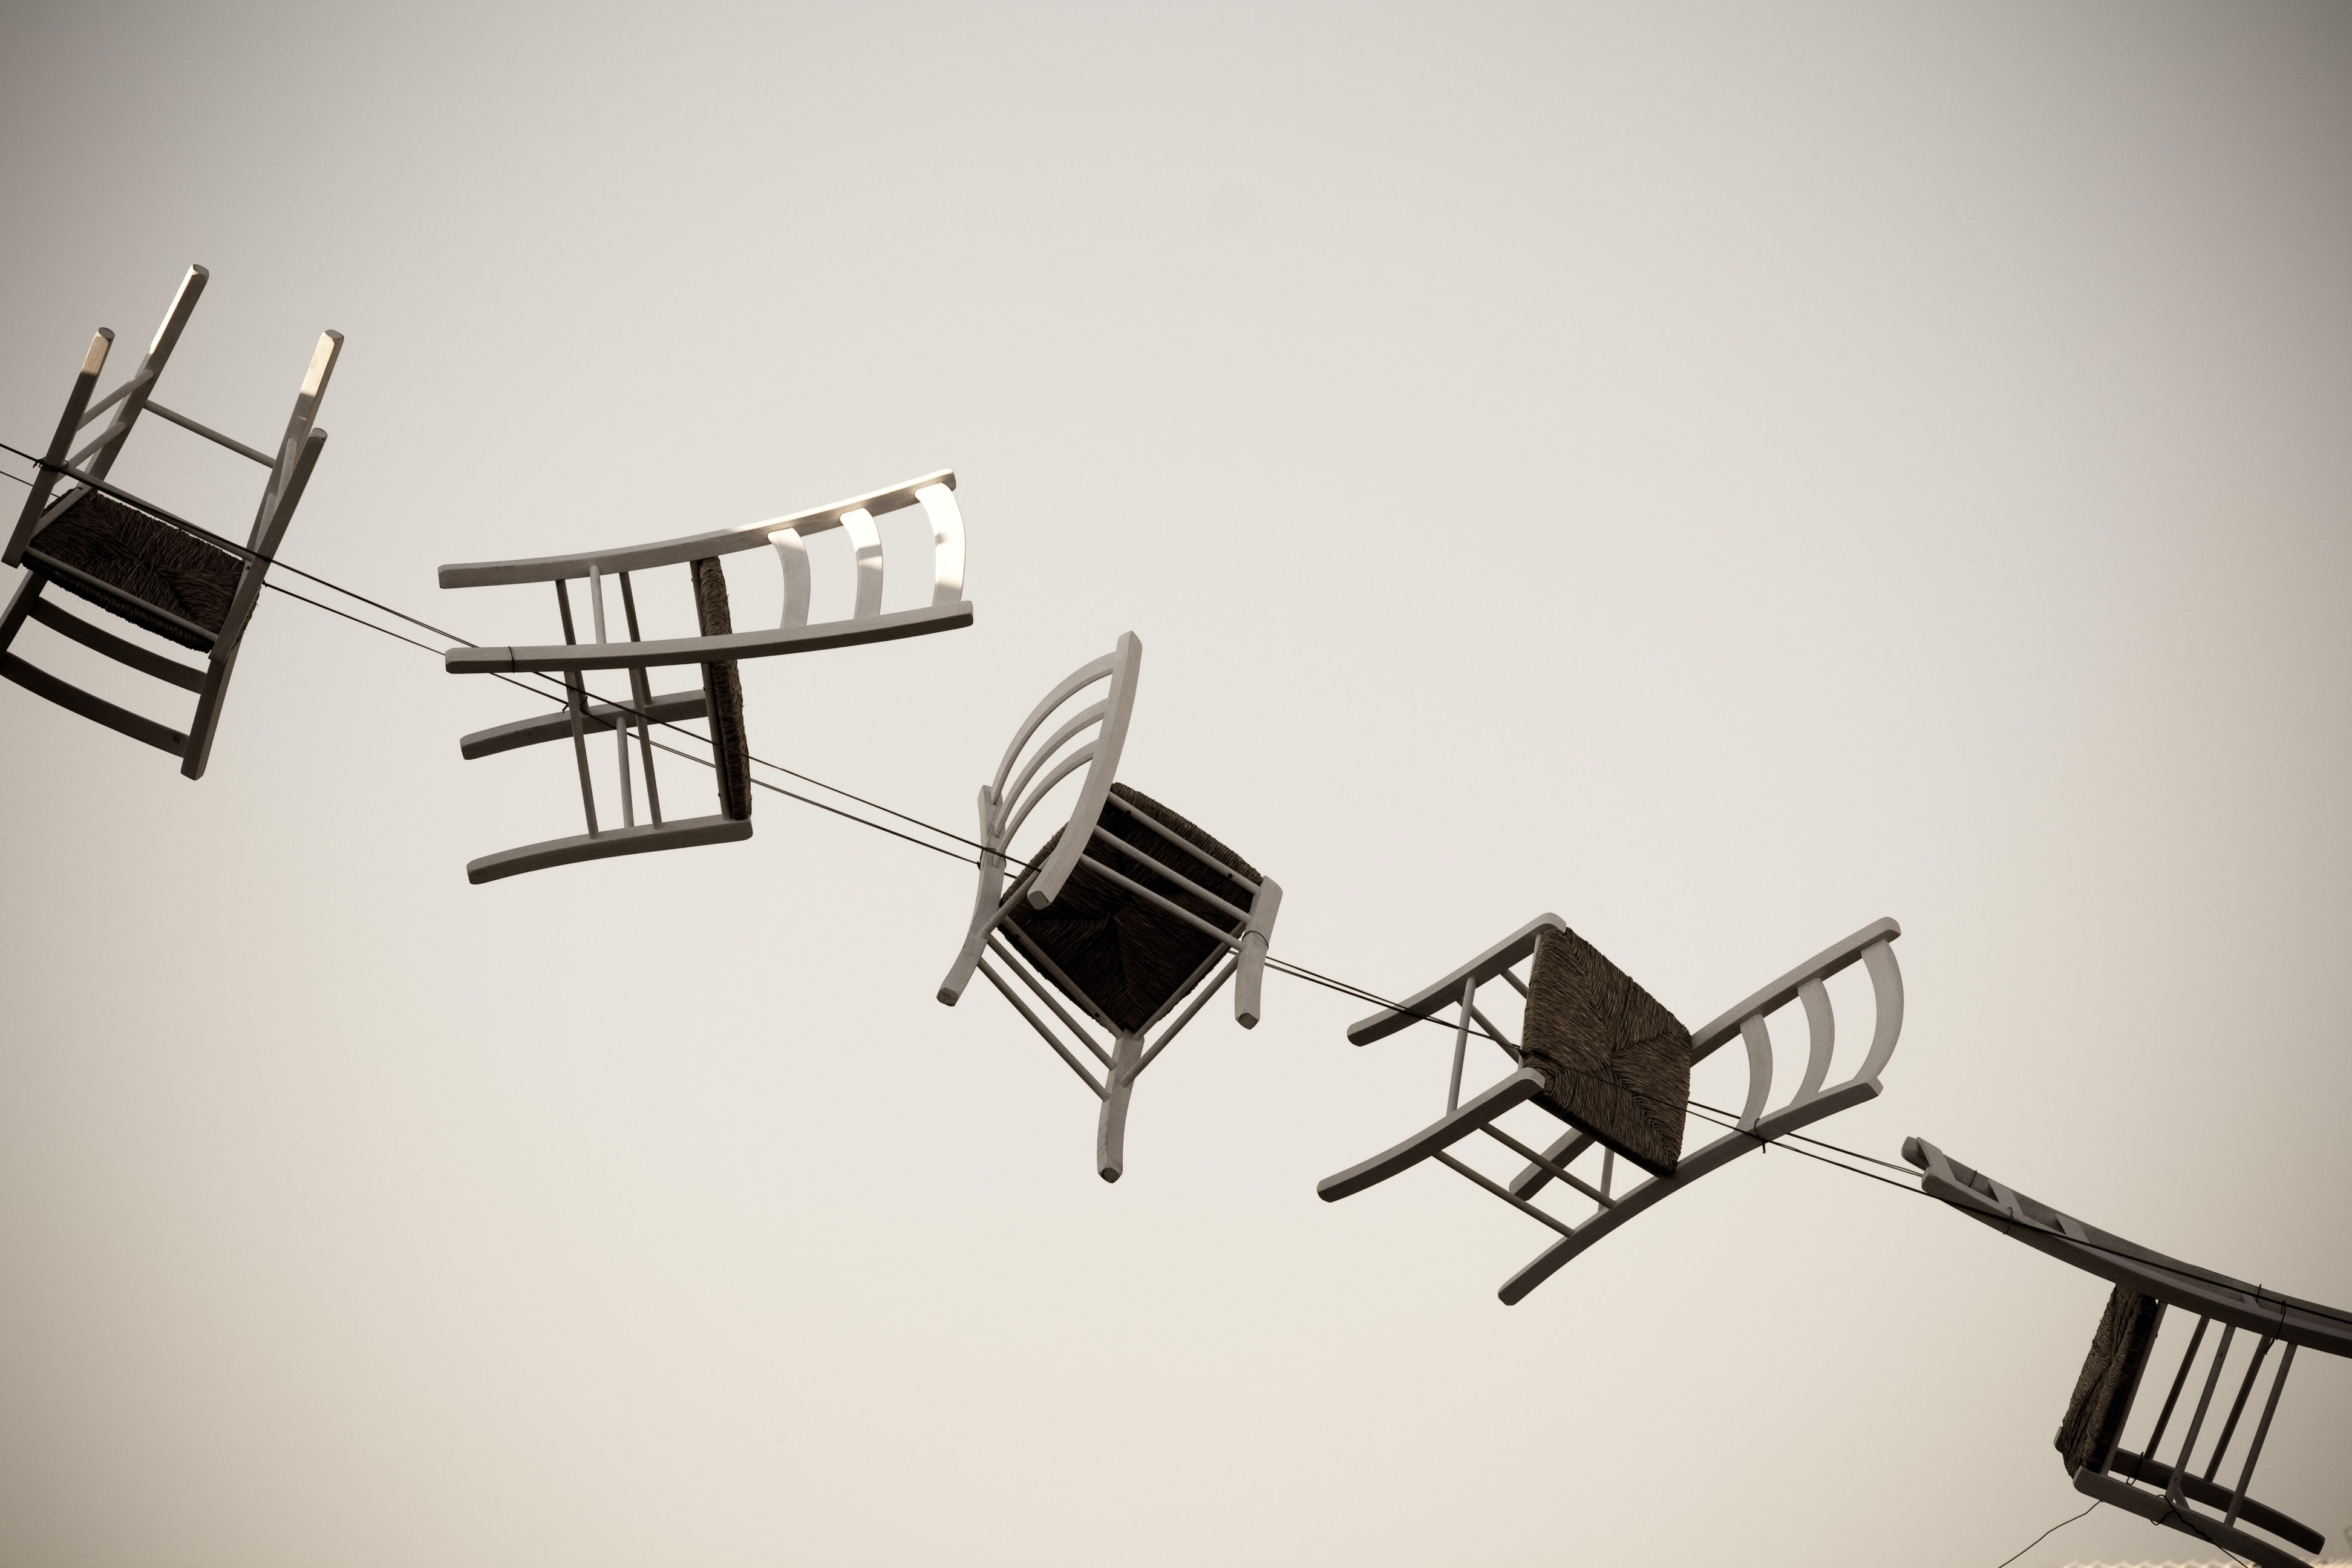 Suspended chairs on cable art design with light background in Otranto